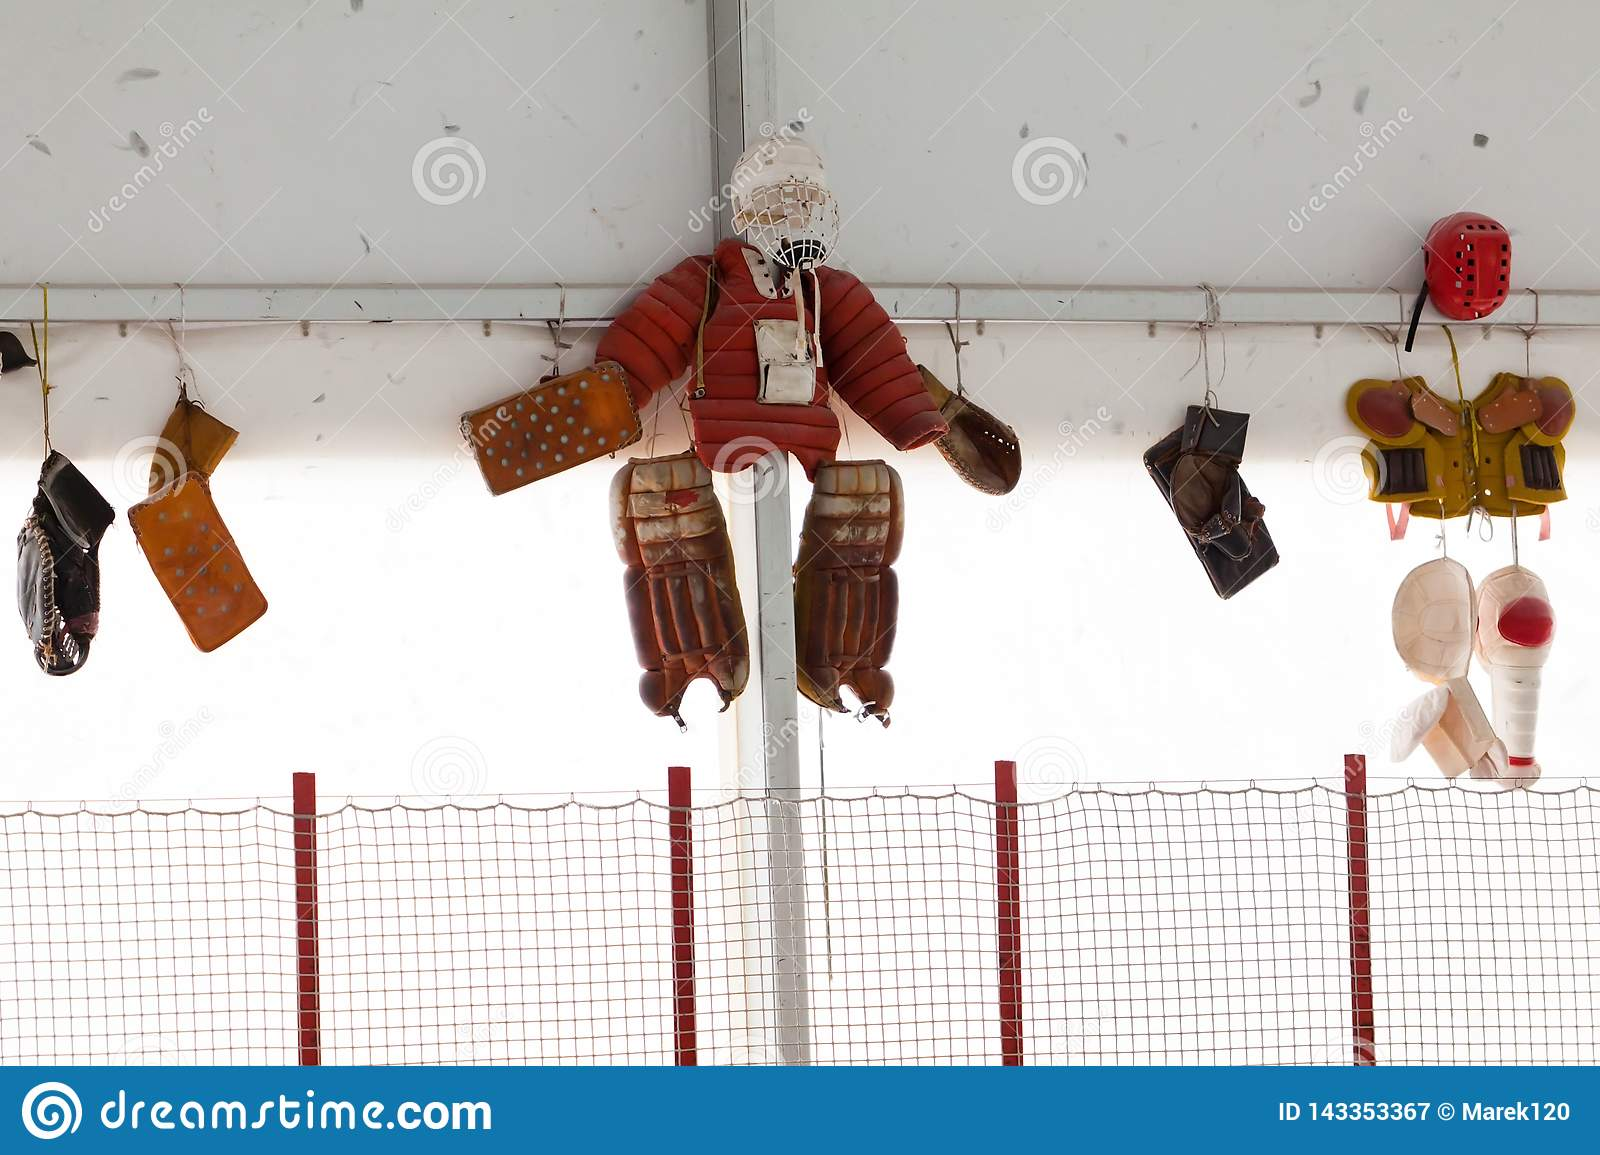 Old protective pants and other goalkeeper protection hanging on the wall